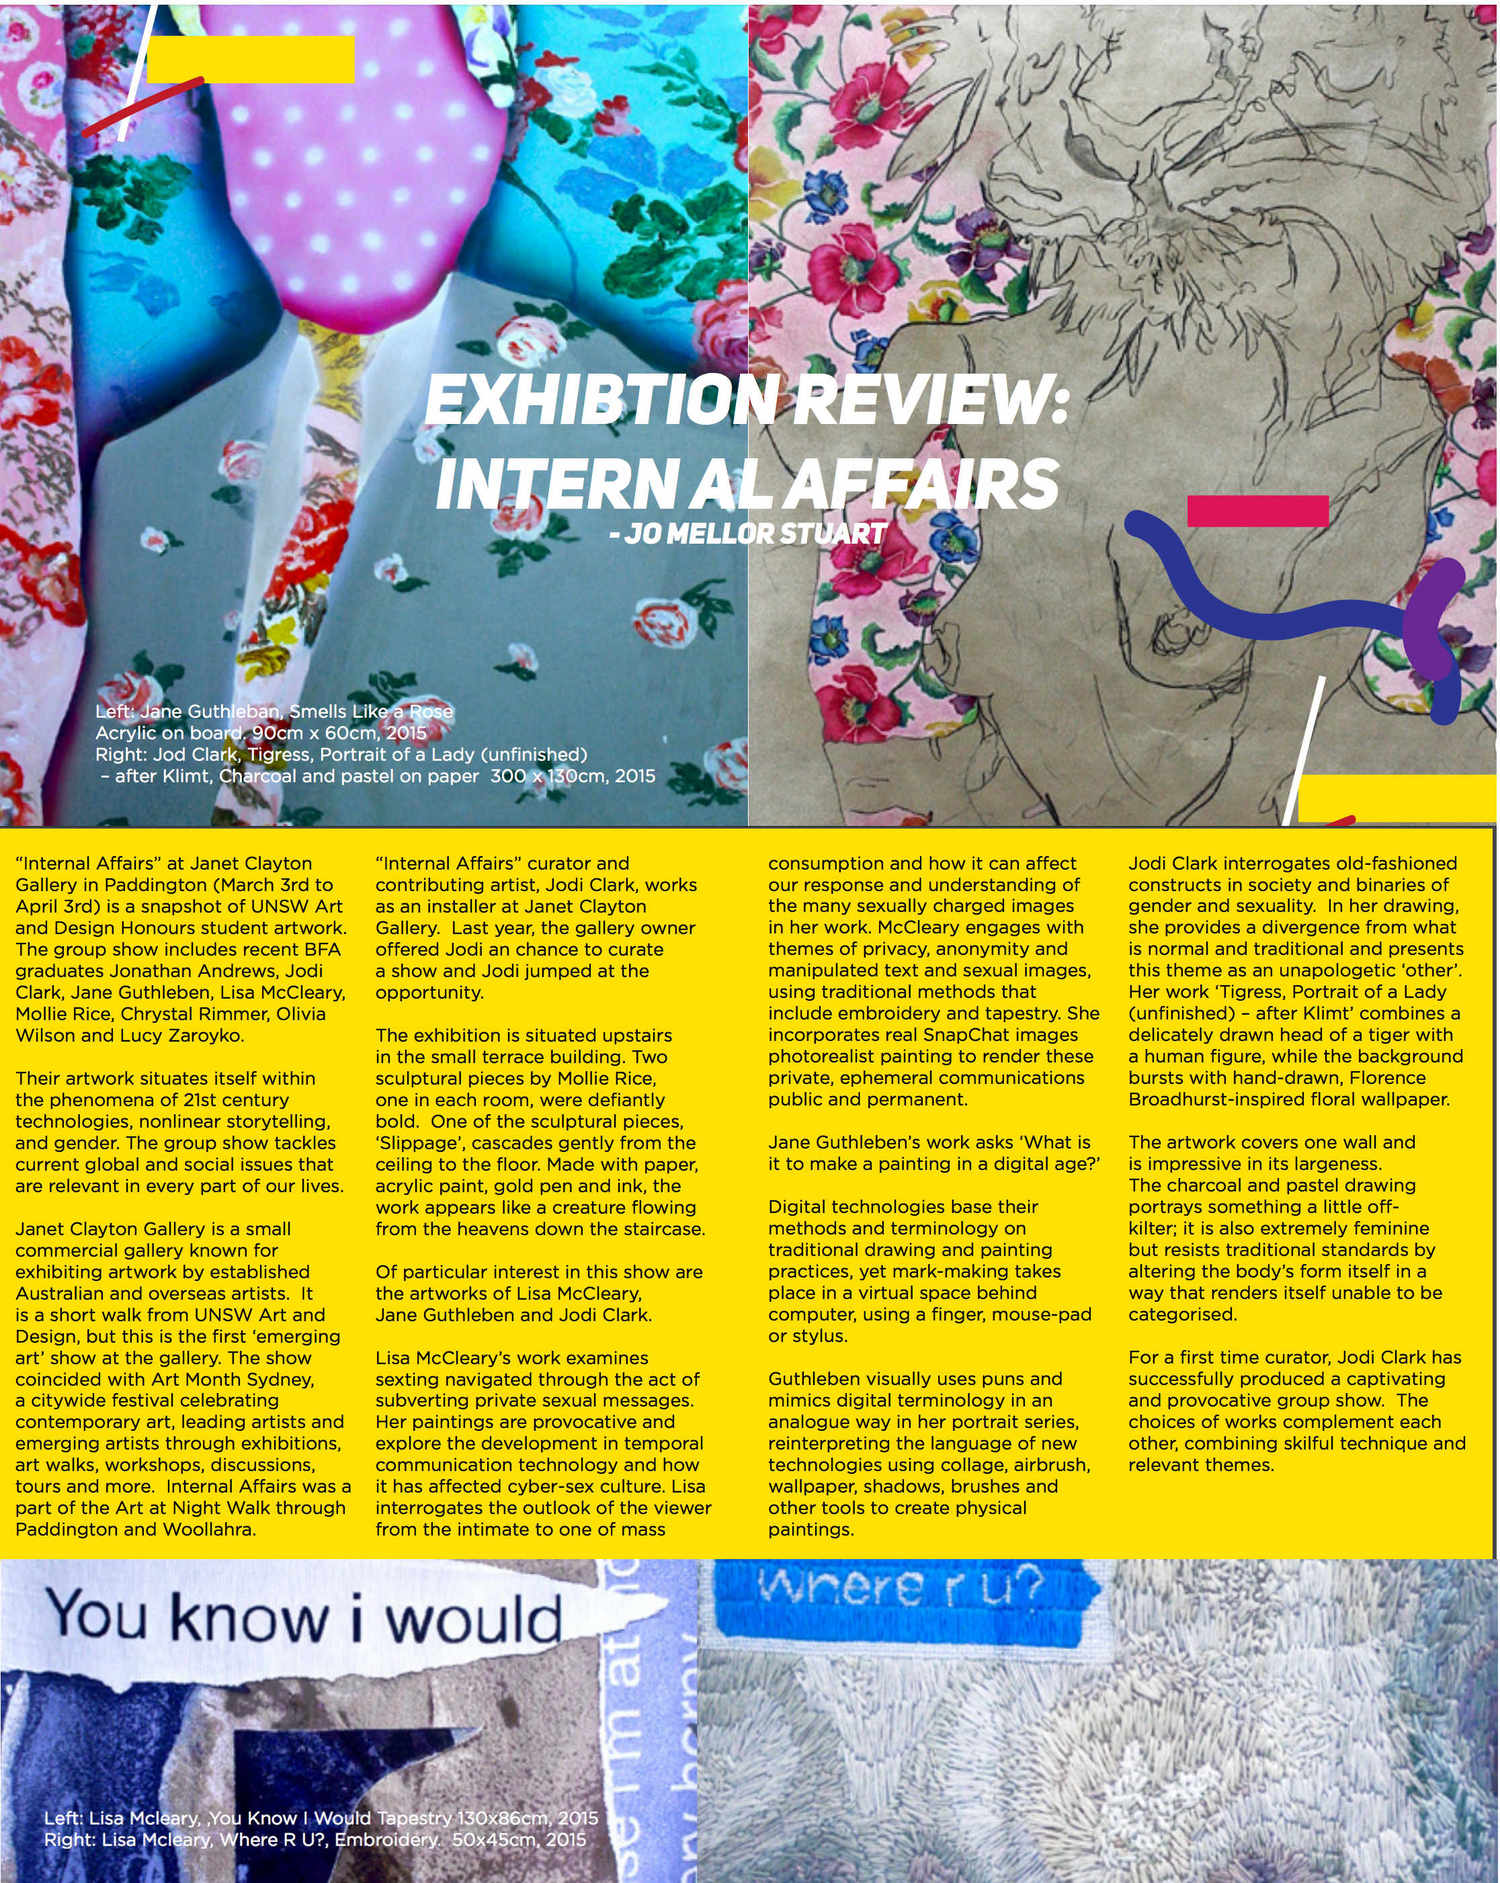 Review of Internal Affairs curated by Jodi Clark in Arcadia, UNSW